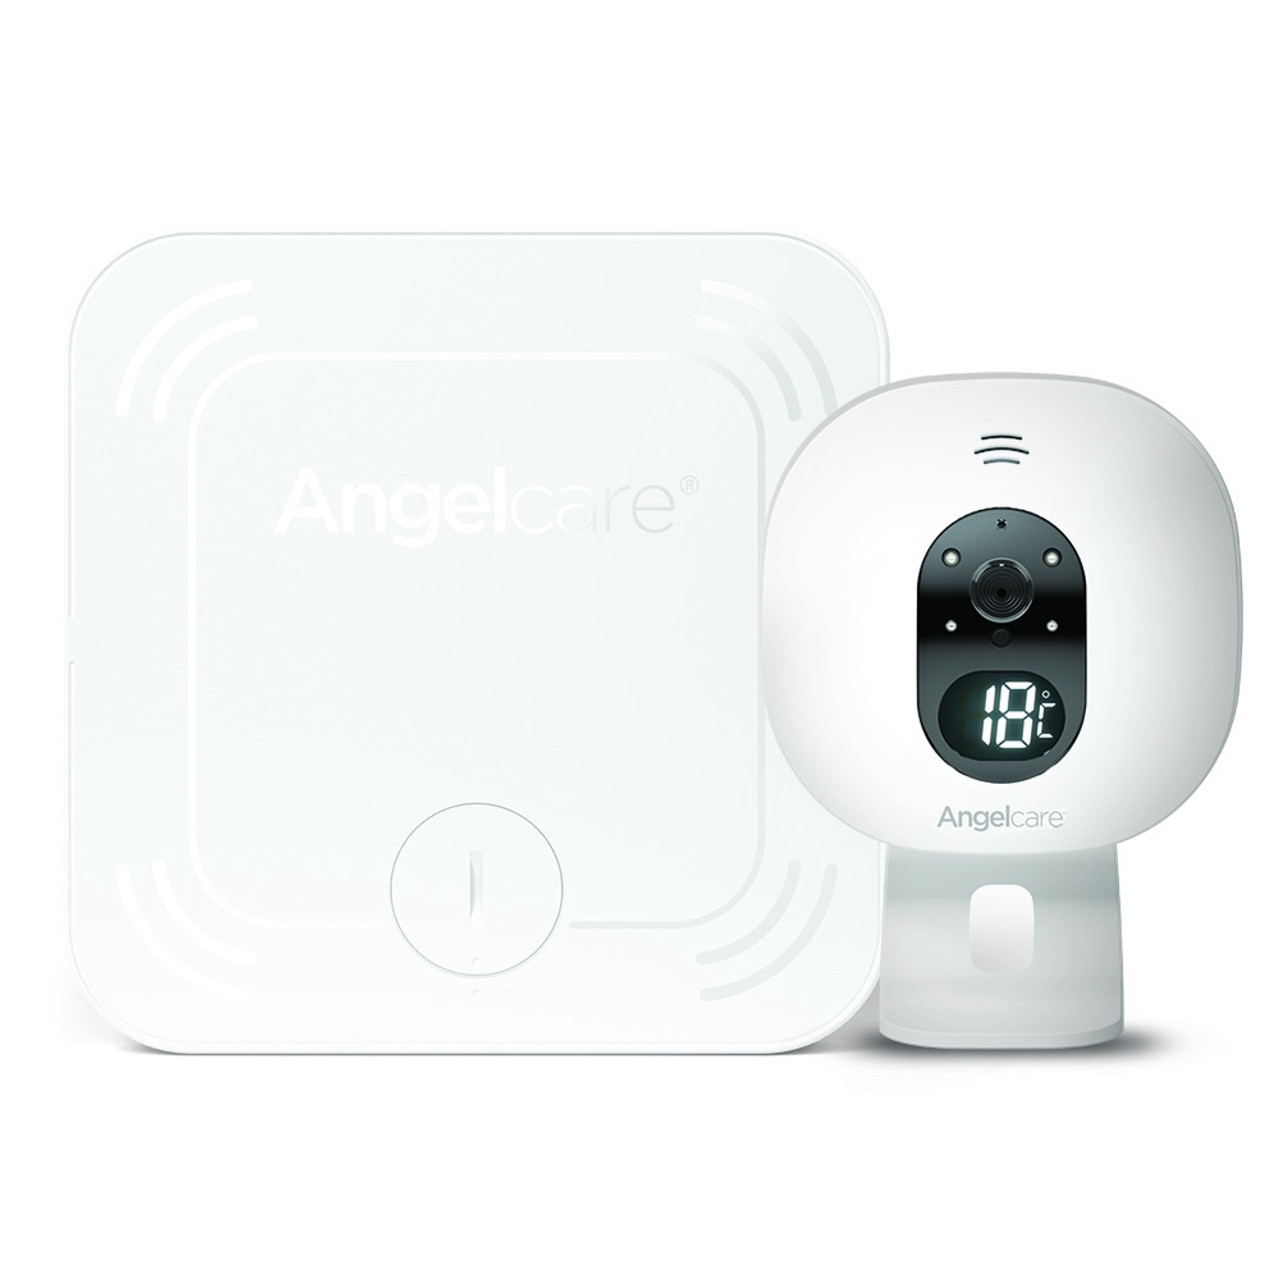 Angelcare ACAM2 Extra Movement Sensor Pad & Additional Camera at Baby Barn Discounts Additional nursery unit compatible to the Angelcare AC527, AC337, AC327, AC320